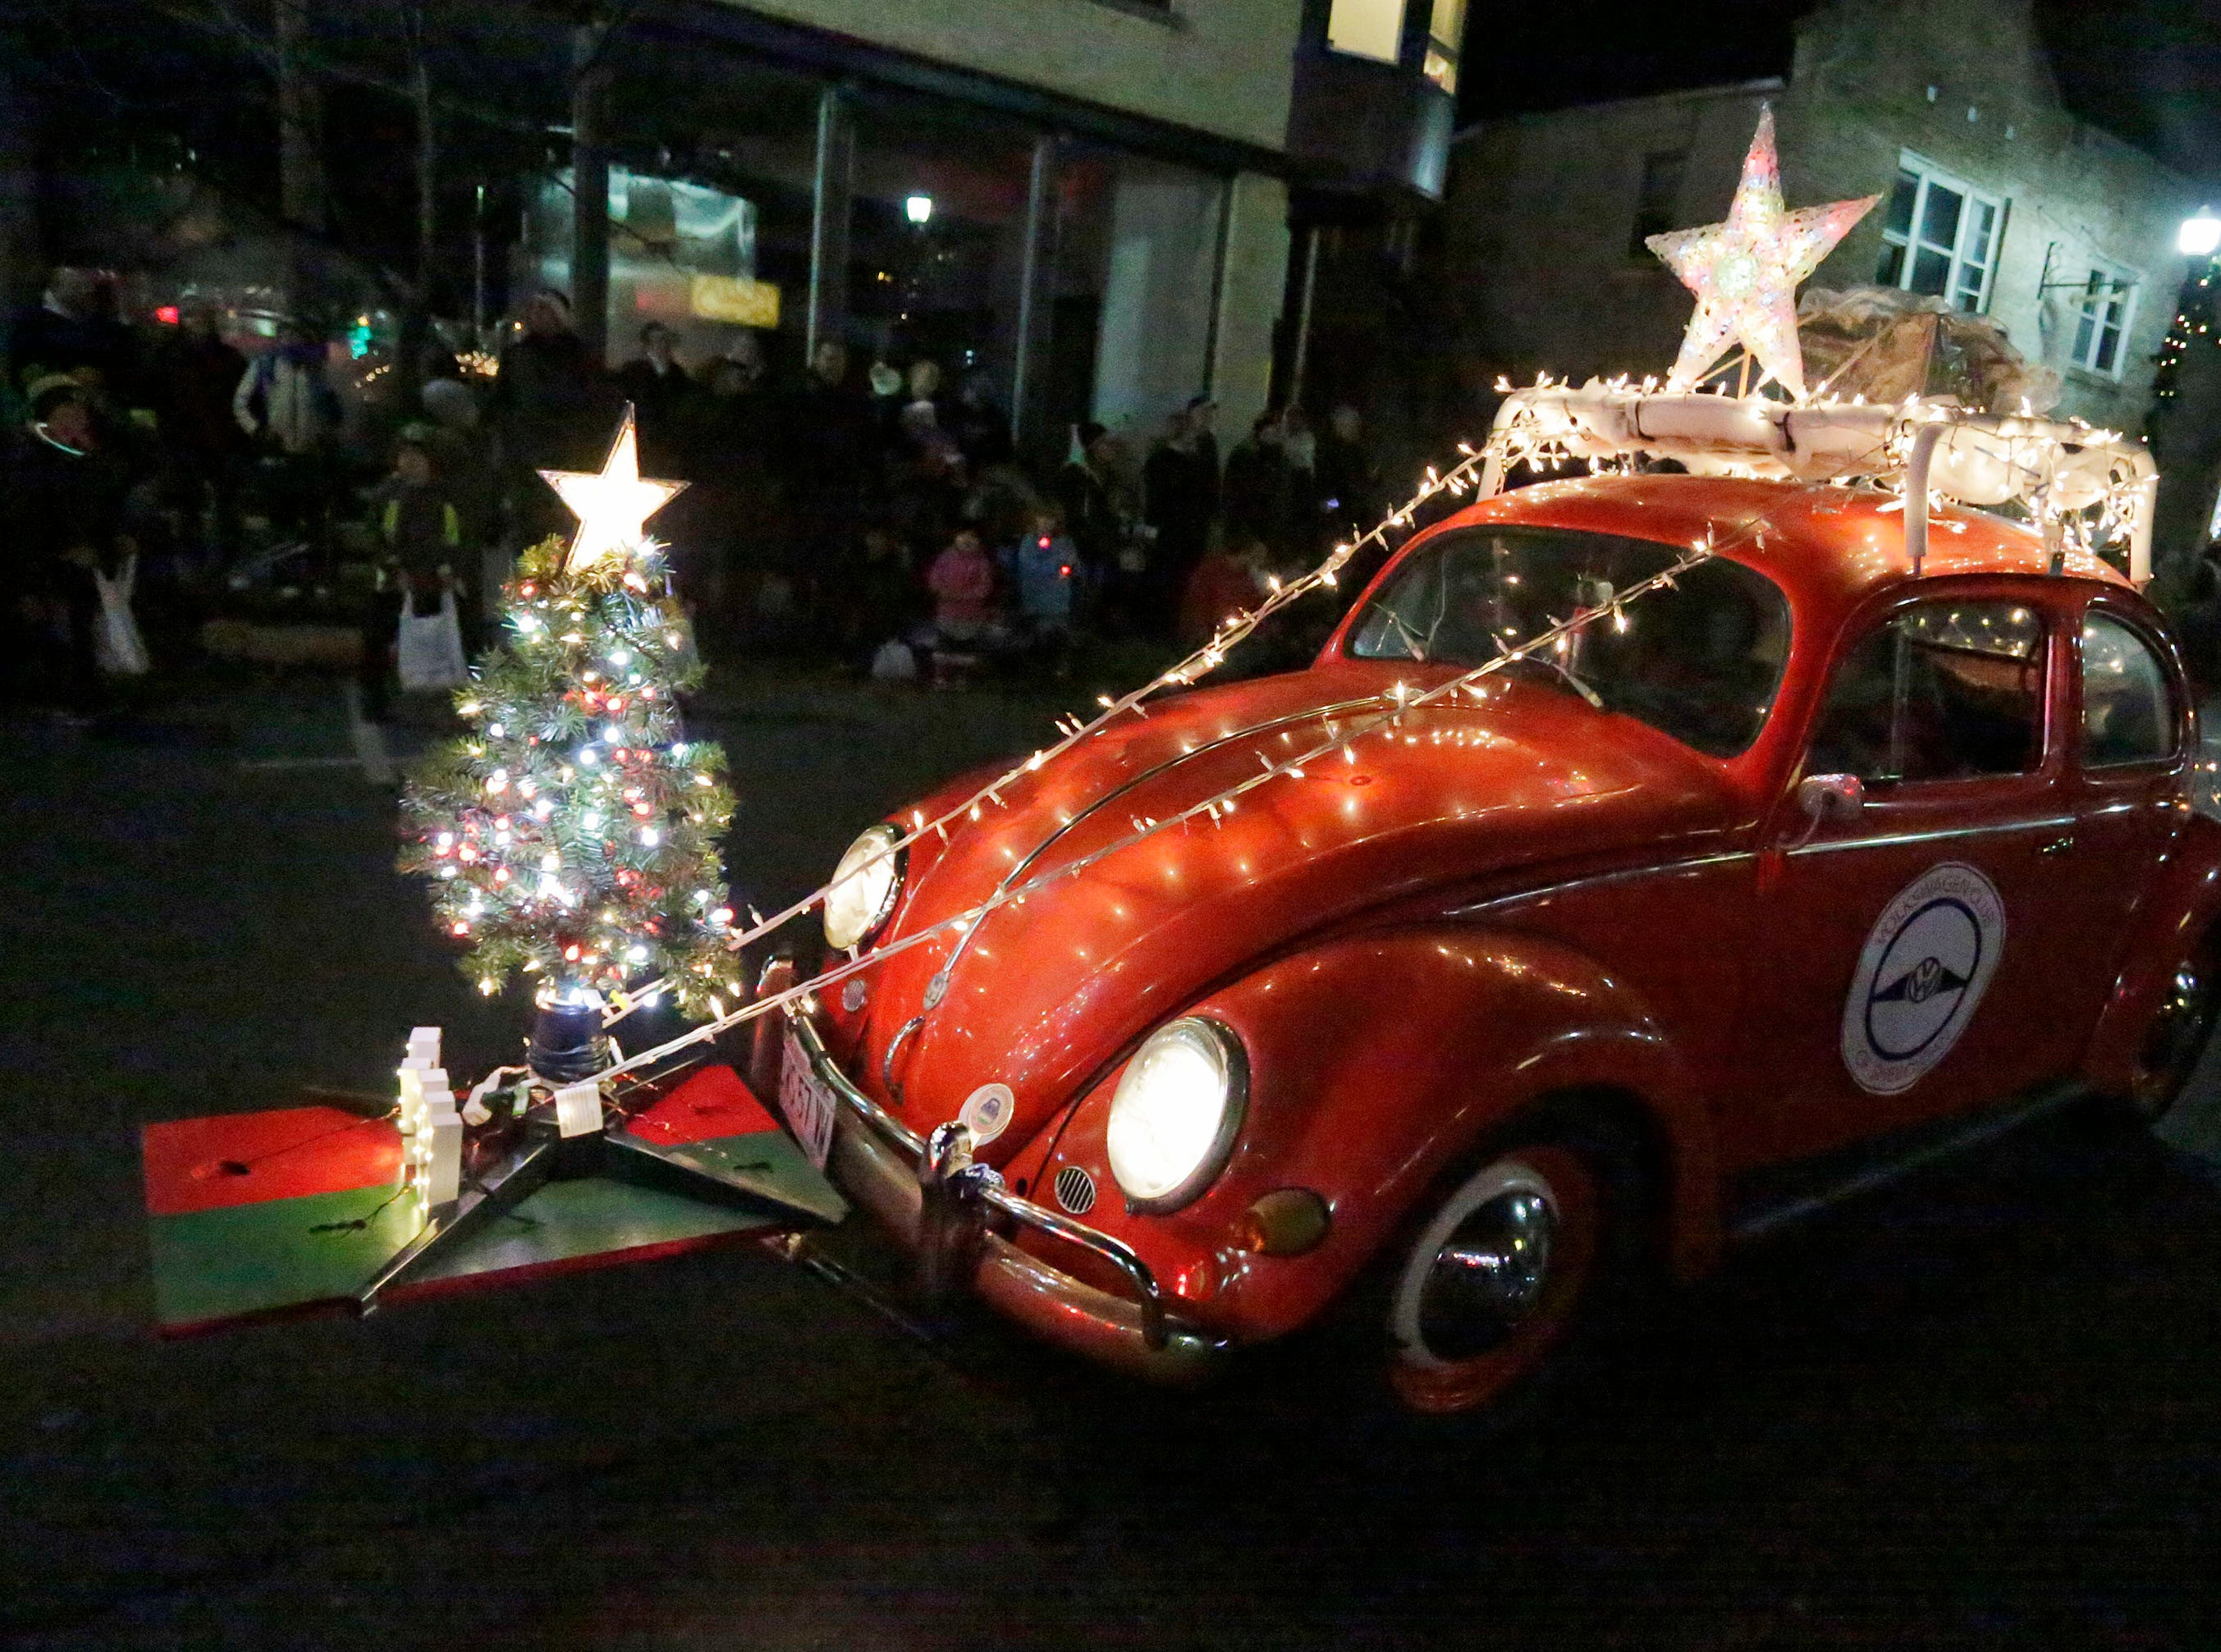 David Weinhold of Sheboygan Falls drives his well illuminated Volkswagen Beetle in the Plymouth Christmas Parade, Friday, November 23, 2018, in Plymouth, Wis.